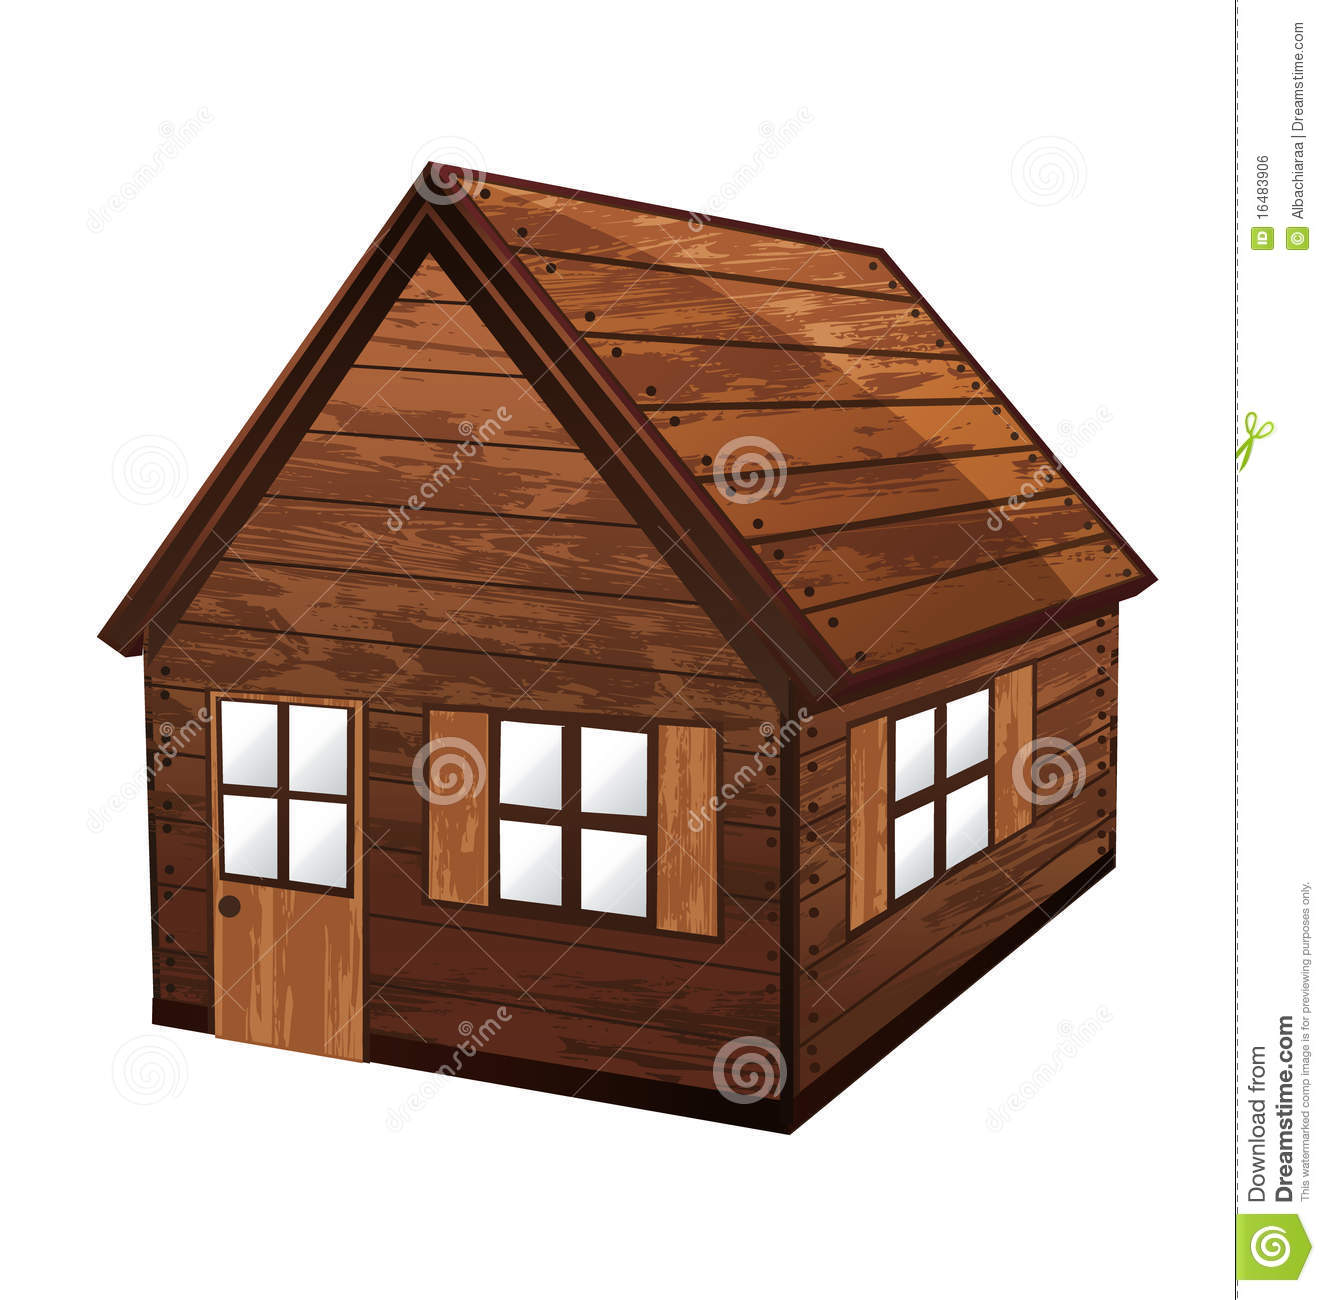 Wooden house royalty free stock image image 16483906 - How to make a wooden house ...